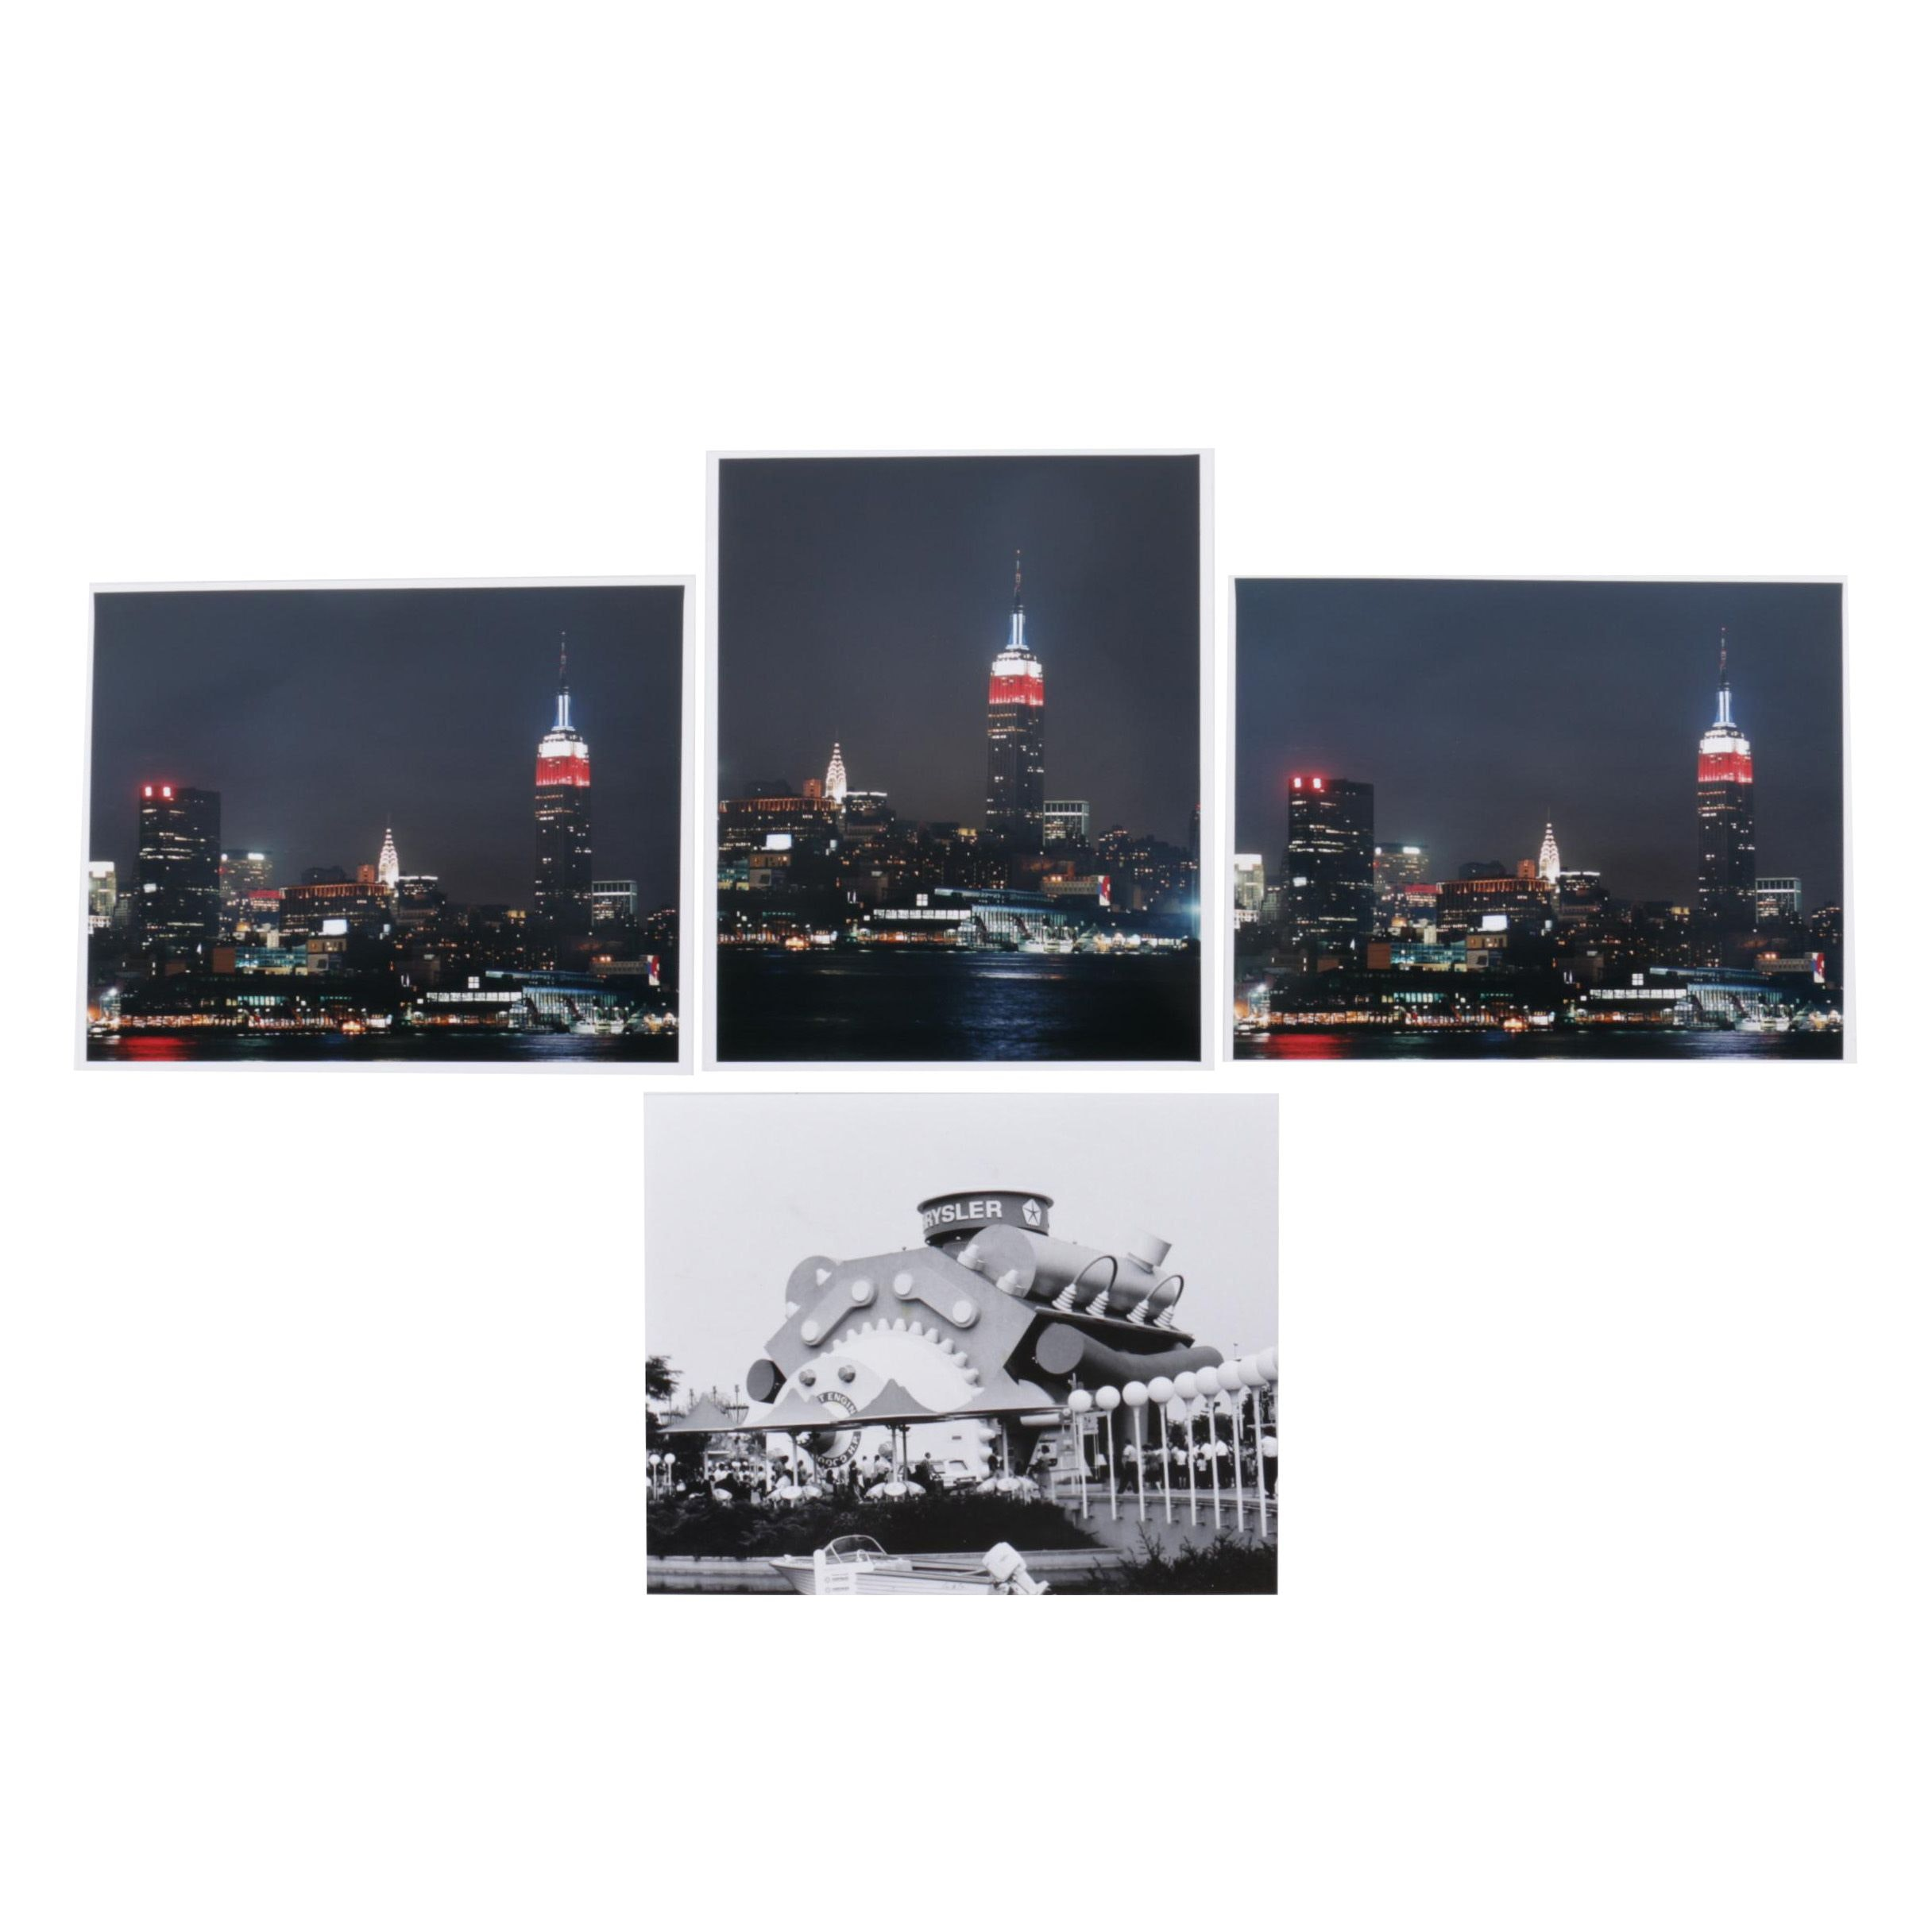 Digital Photographs of New York Skyline and a Chrysler Engine